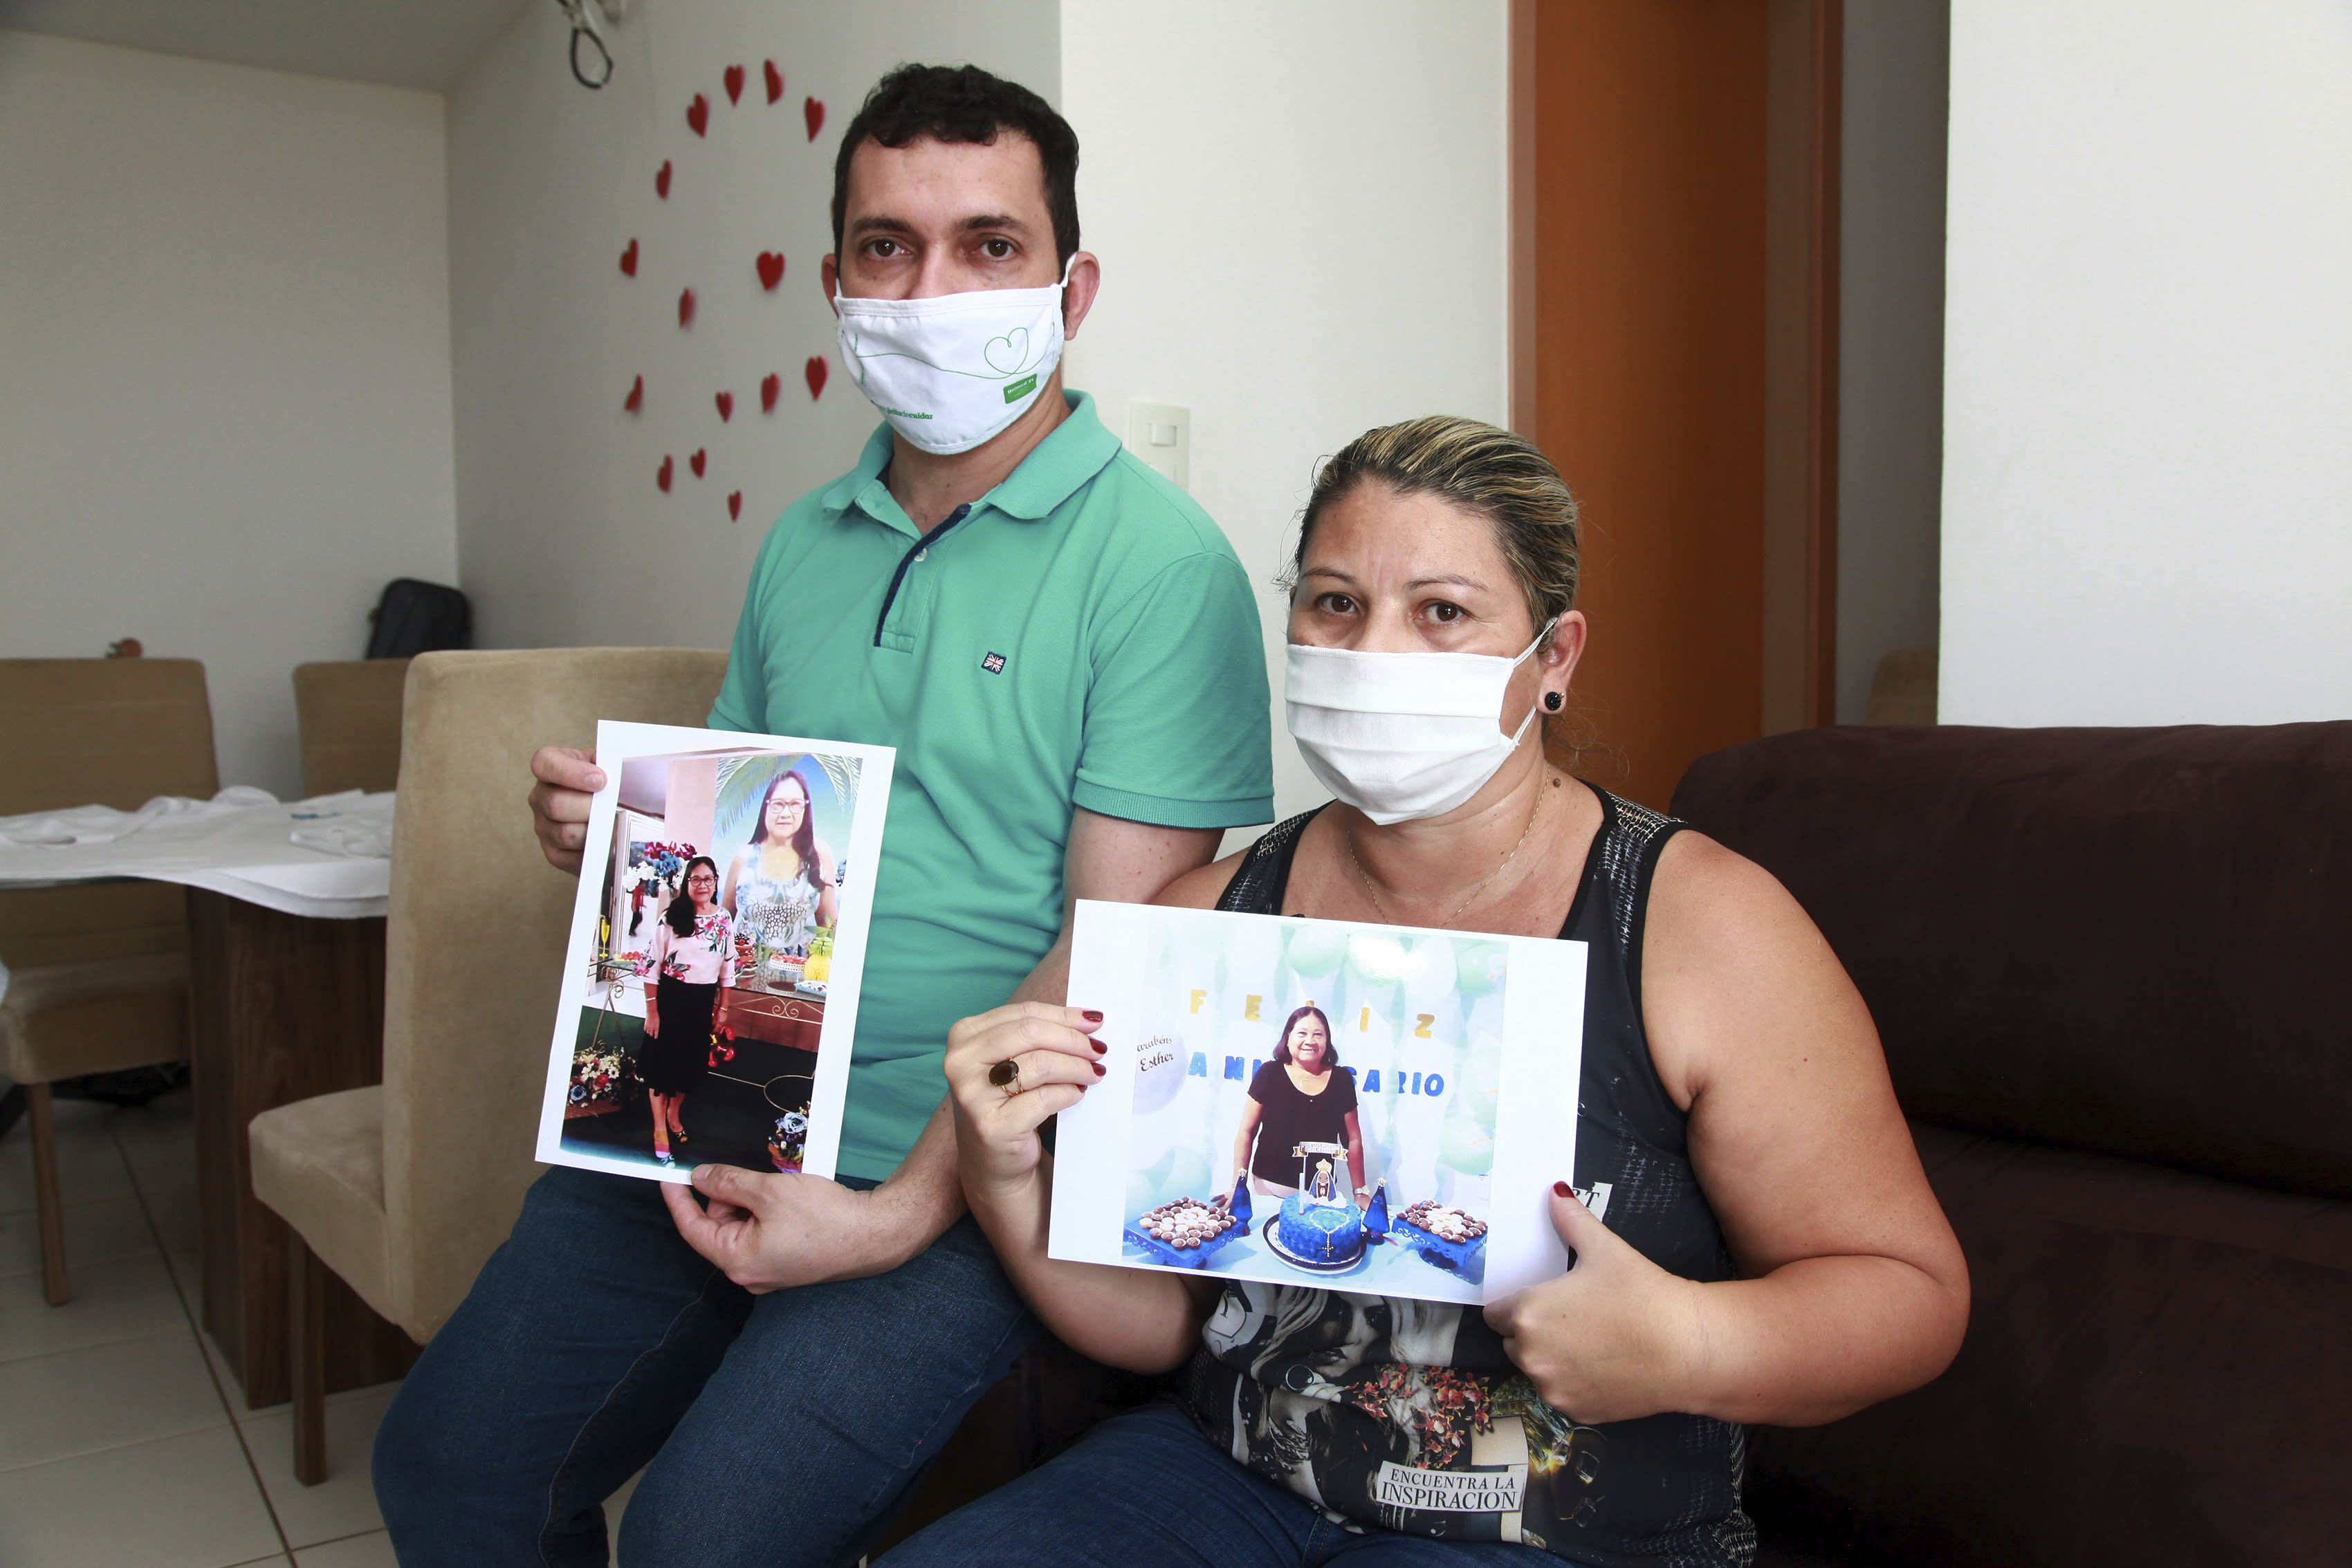 Luigi do Nascimento and his wife Viviane Melo da Silva, pose for a photo holding pictures of her mother Esther Melo da Silva, in their home in Manaus, Brazil, Tuesday, Aug. 4, 2020. Da Silva's 67-year-old mother was a healthy lady who loved to help others, go to the church and share her days with her kids and grandchildren. She died from COVID-19 on April 9, after five days in a public hospital. (AP Photo/Helton Belo)